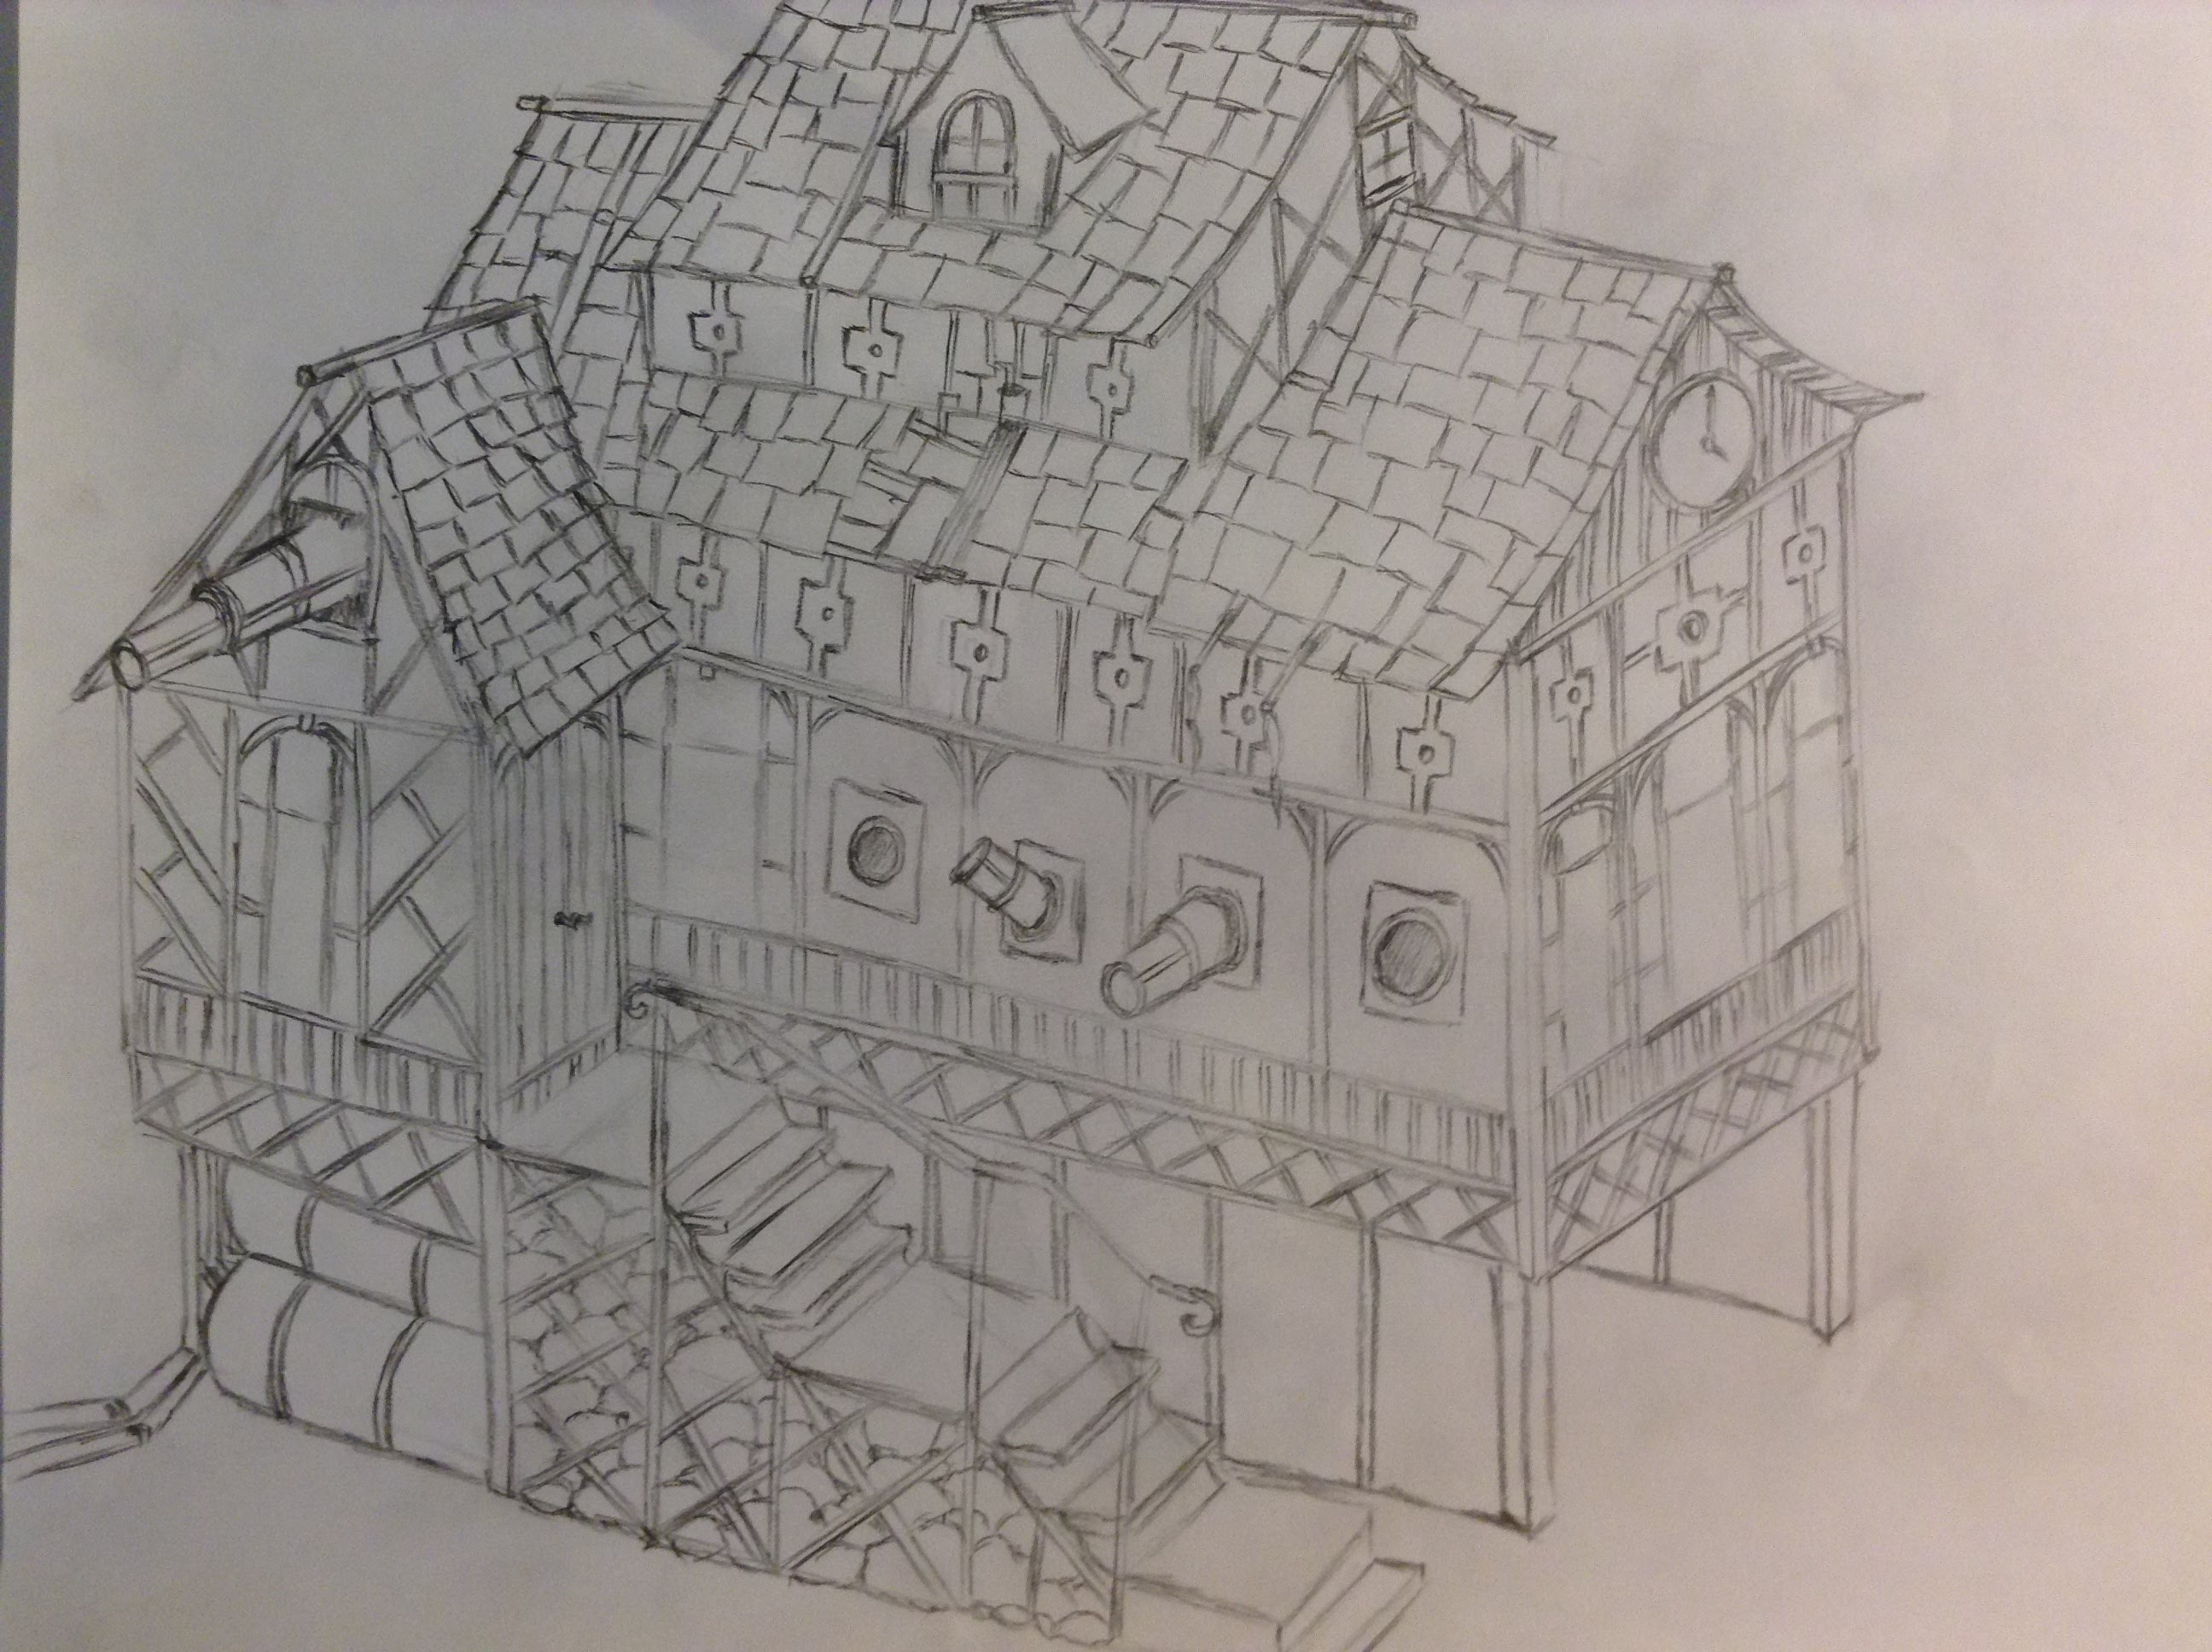 Medieval Coloring Pages For Adults : Medieval house drawing at getdrawings.com free for personal use